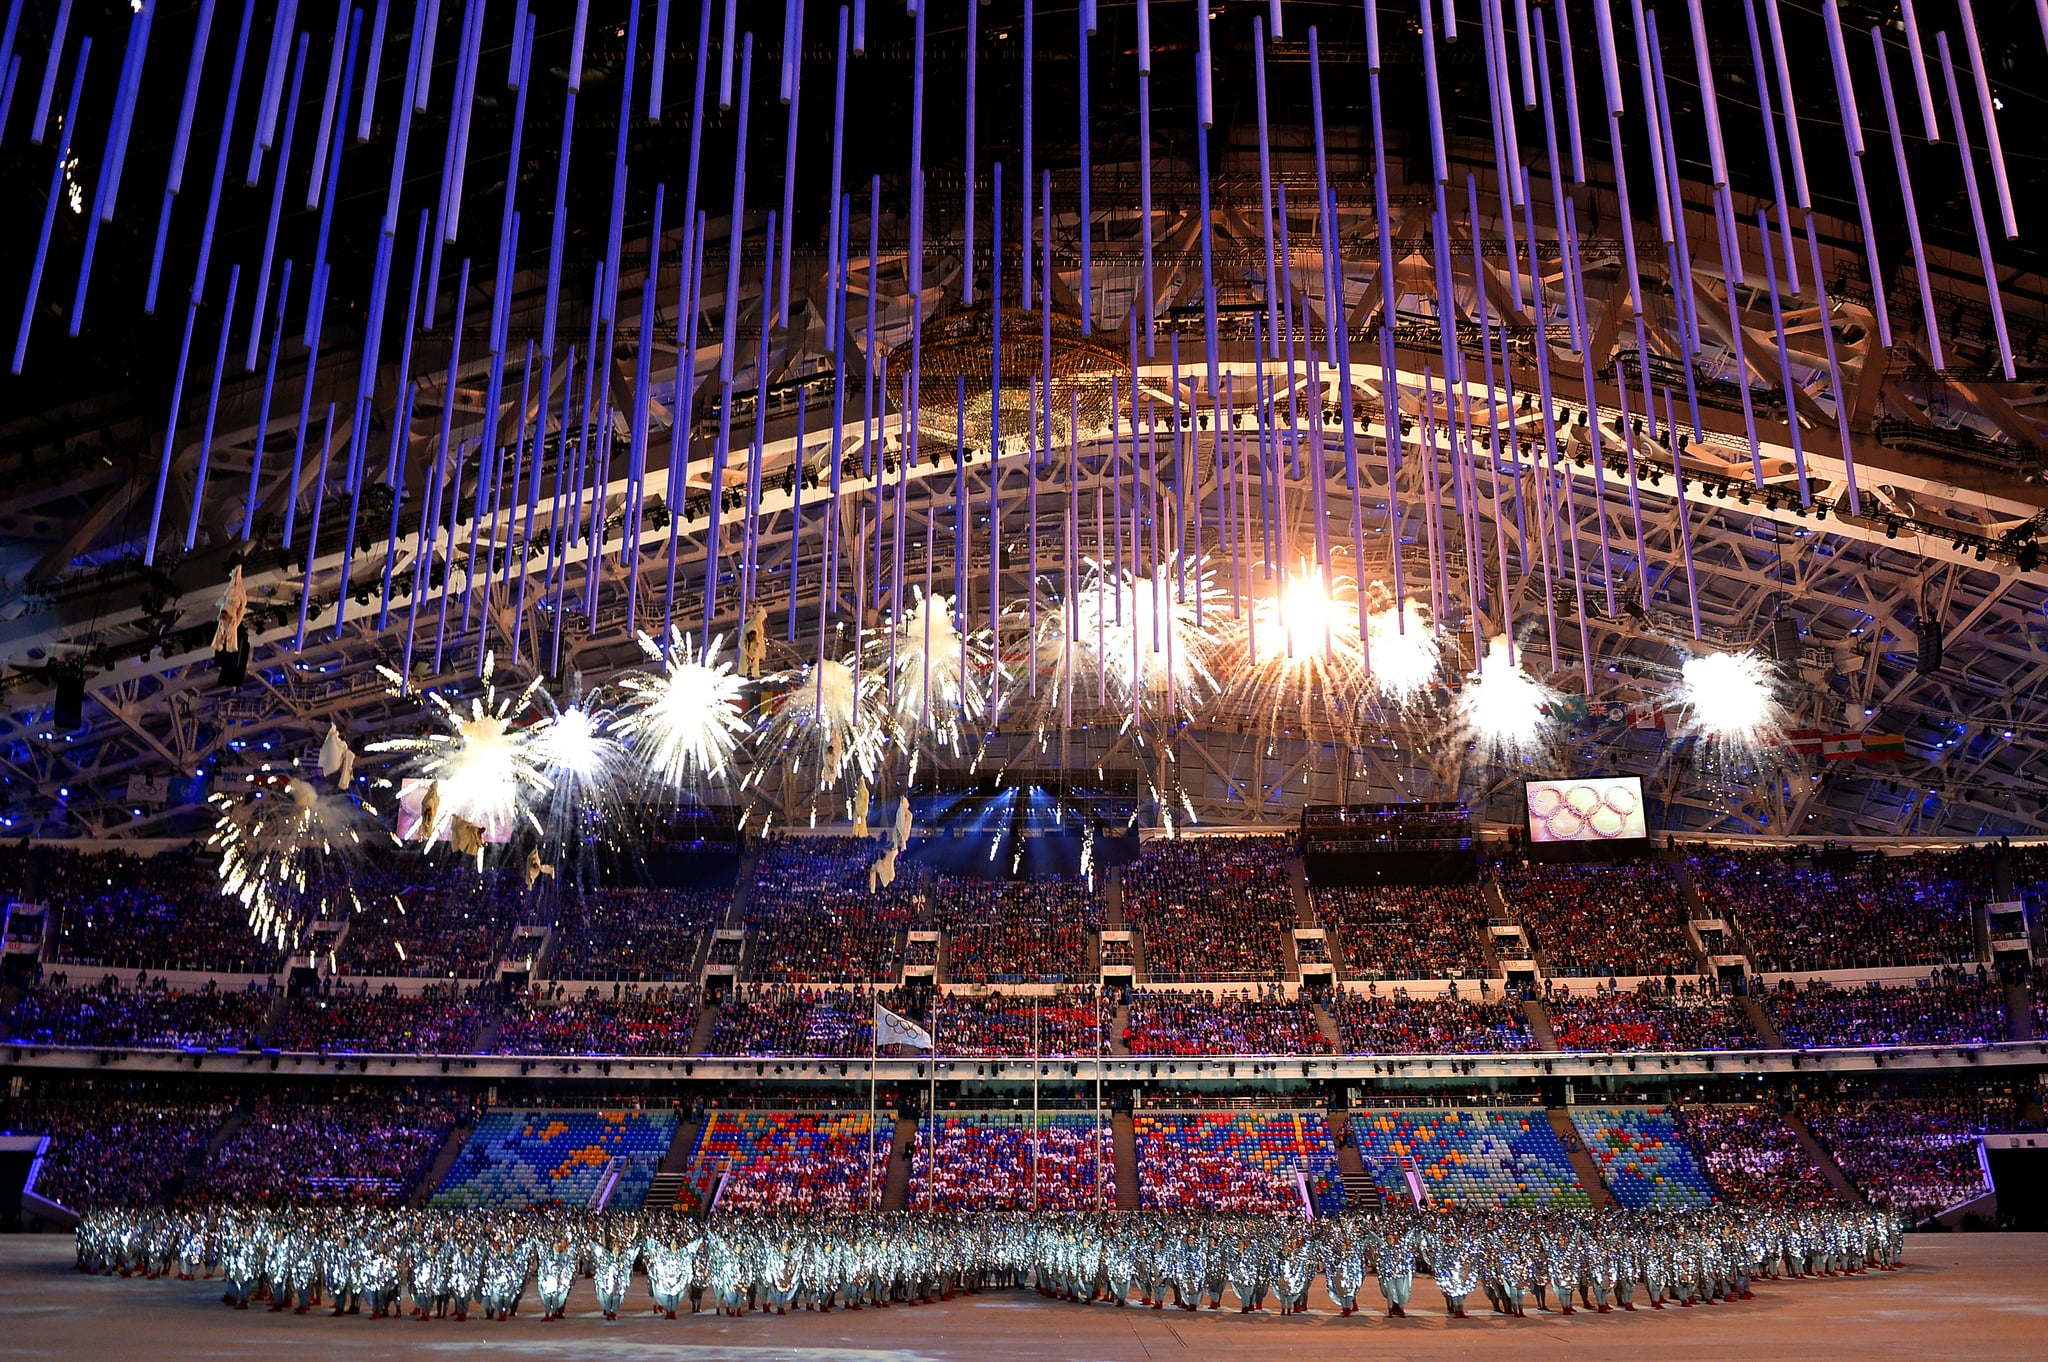 Fireworks sparked during the closing ceremony.